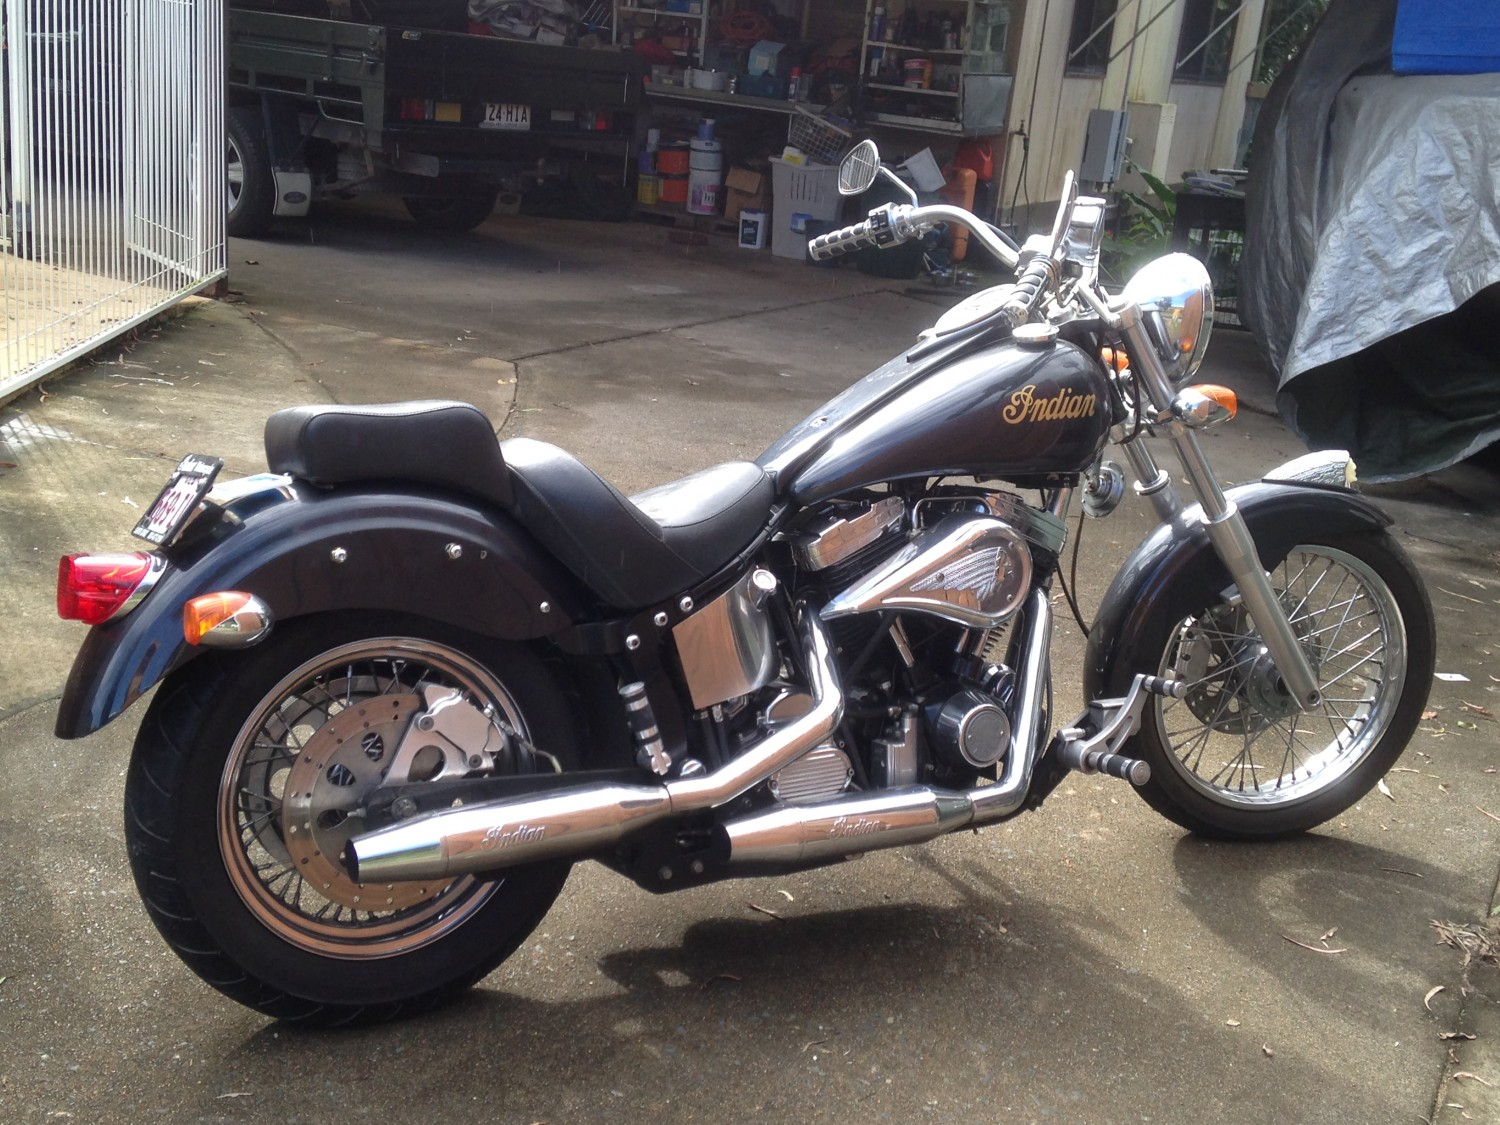 2001 Indian Scout - Scout2001 - Shannons Club-7100